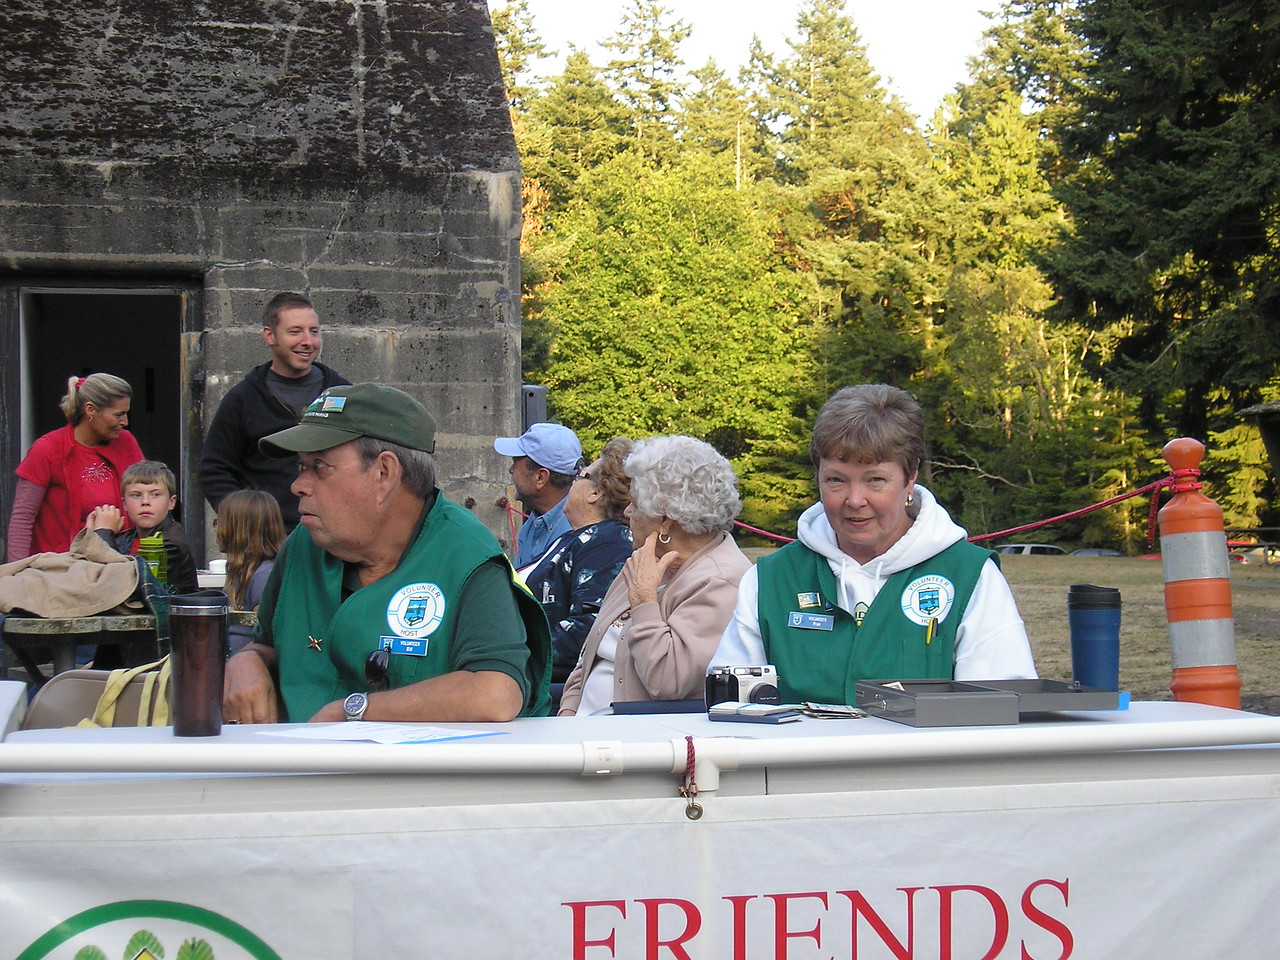 Fellow volunteers Fran and Bill Tickner collected entry fees.